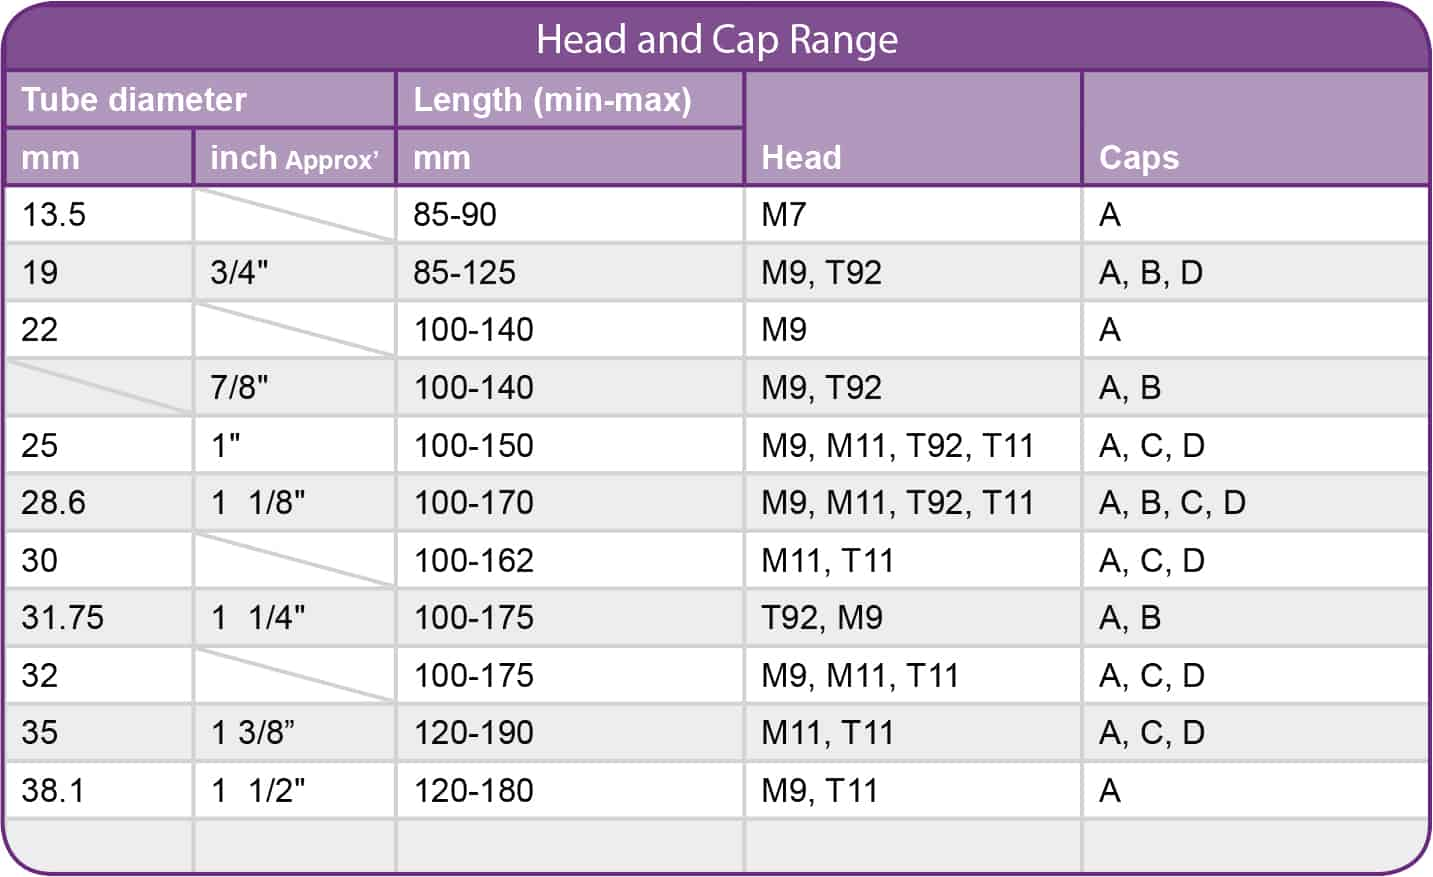 Head and Cap Range